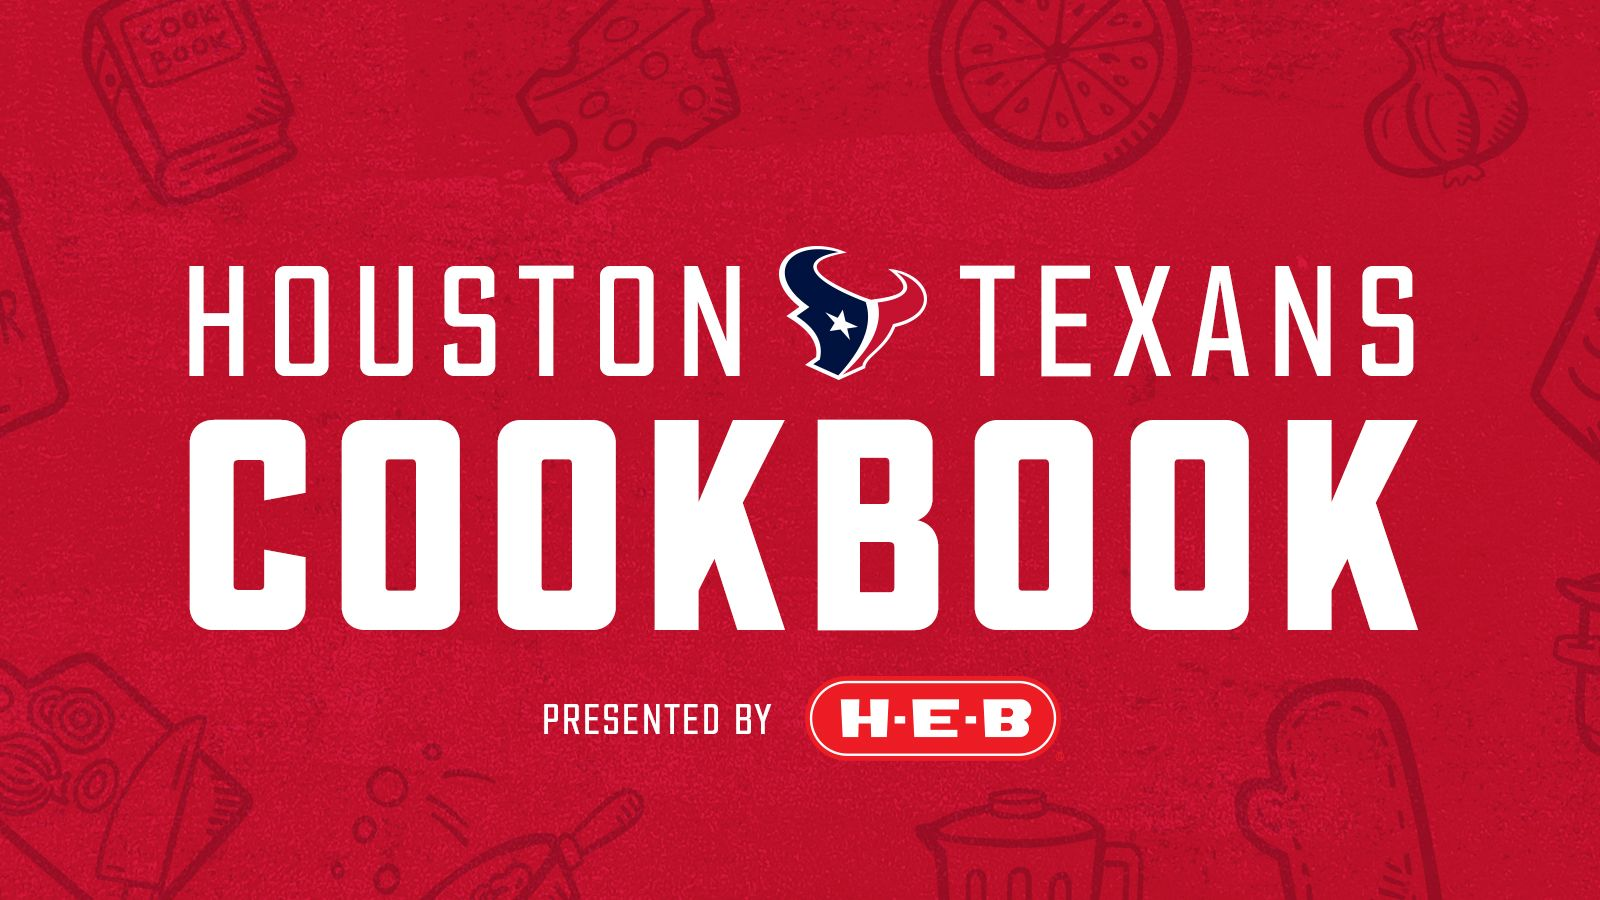 Houston Texans Cookbook presented by H.E.B.